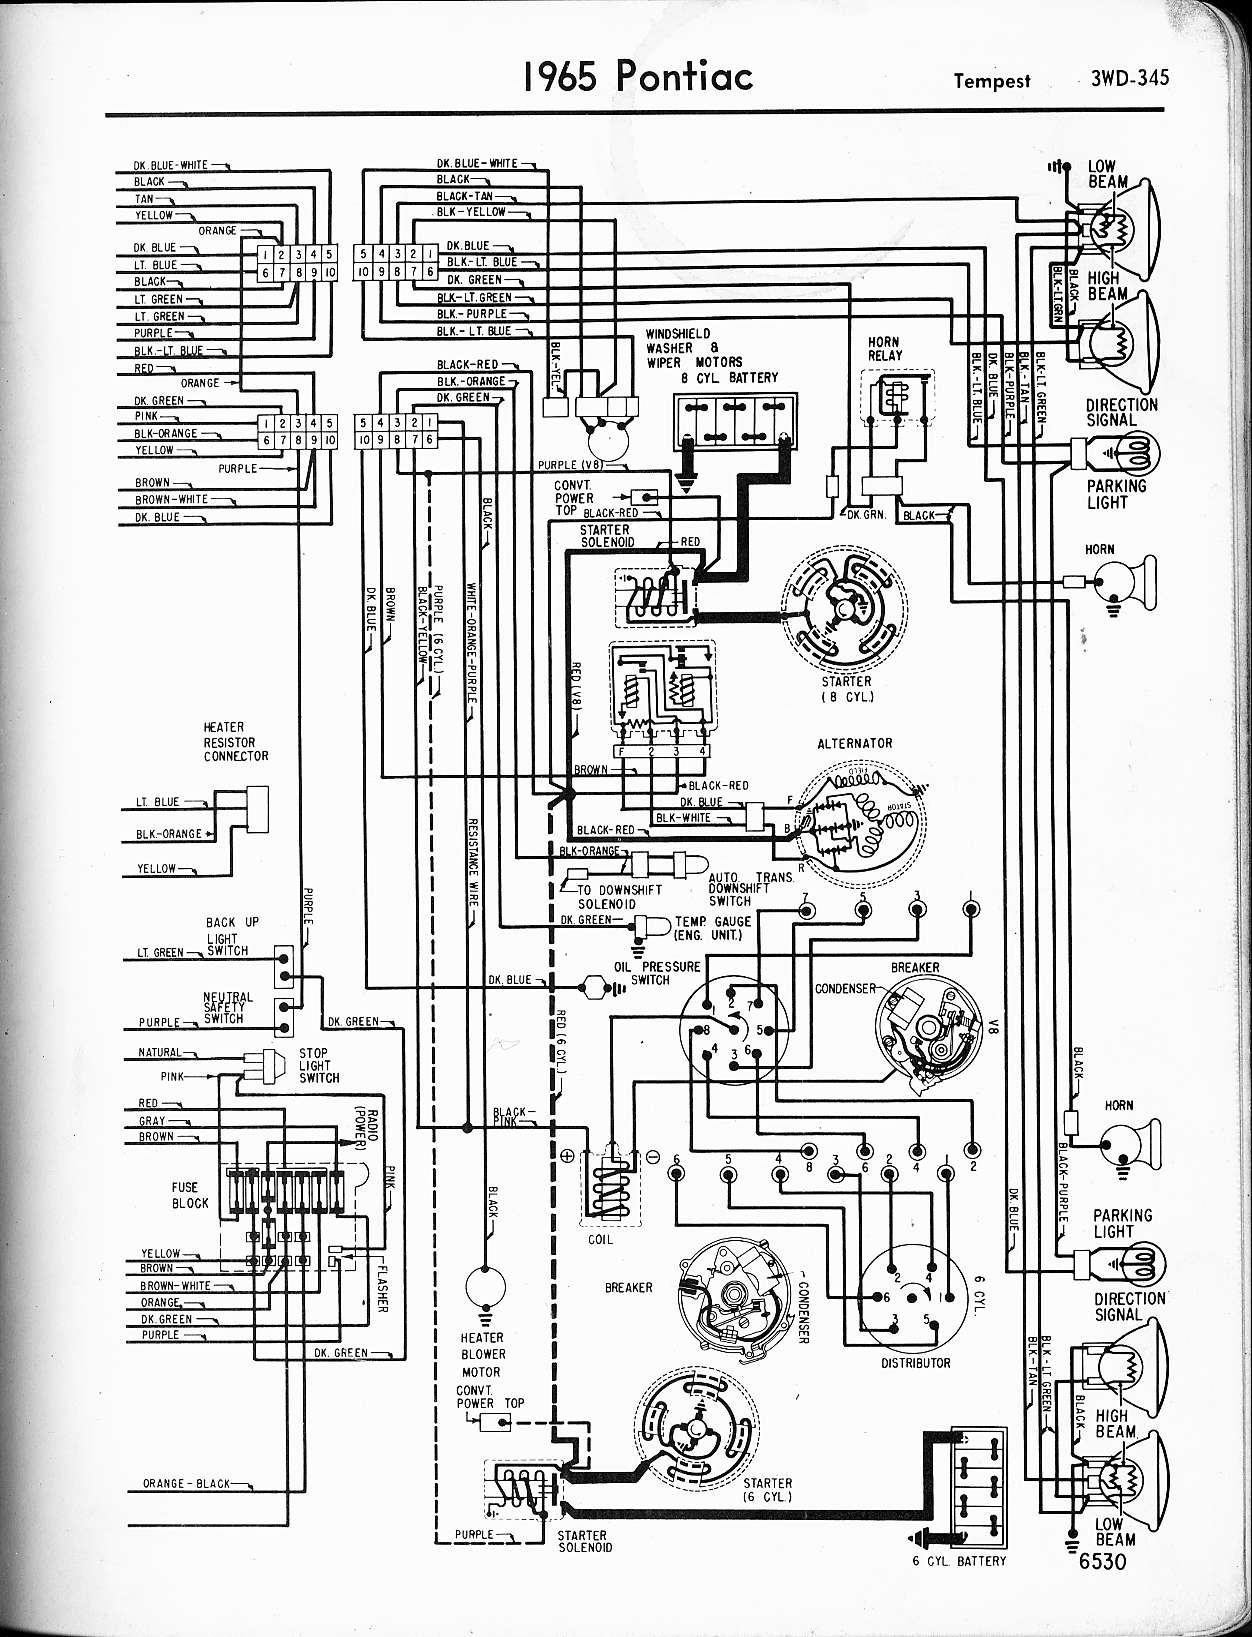 1967 Pontiac Gto Wiring Diagram Diagram Base Website Wiring Diagram -  TELEPHONEWIRINGDIAGRAMS.ALTJ.FRtelephonewiringdiagrams.altj.fr